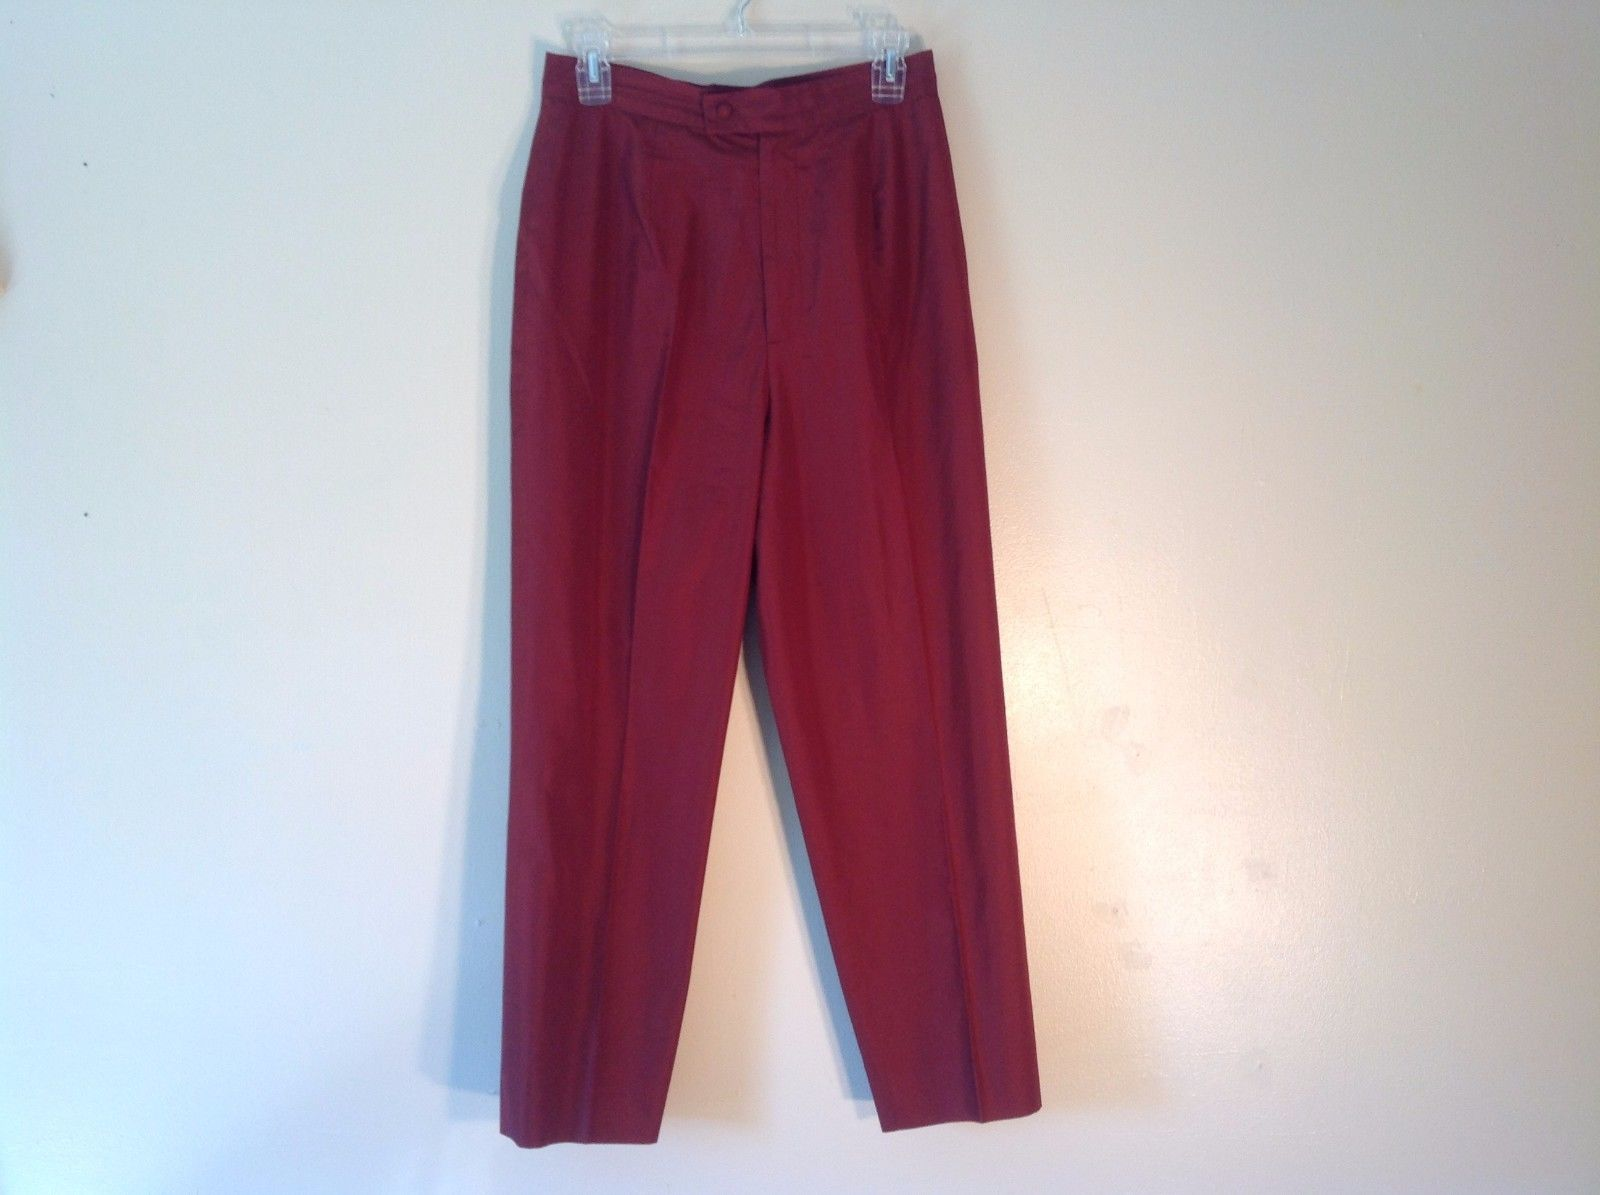 Great Condition Zang Toi 100% Silk Size 10 Maroon Deep Red Dress Pants Long